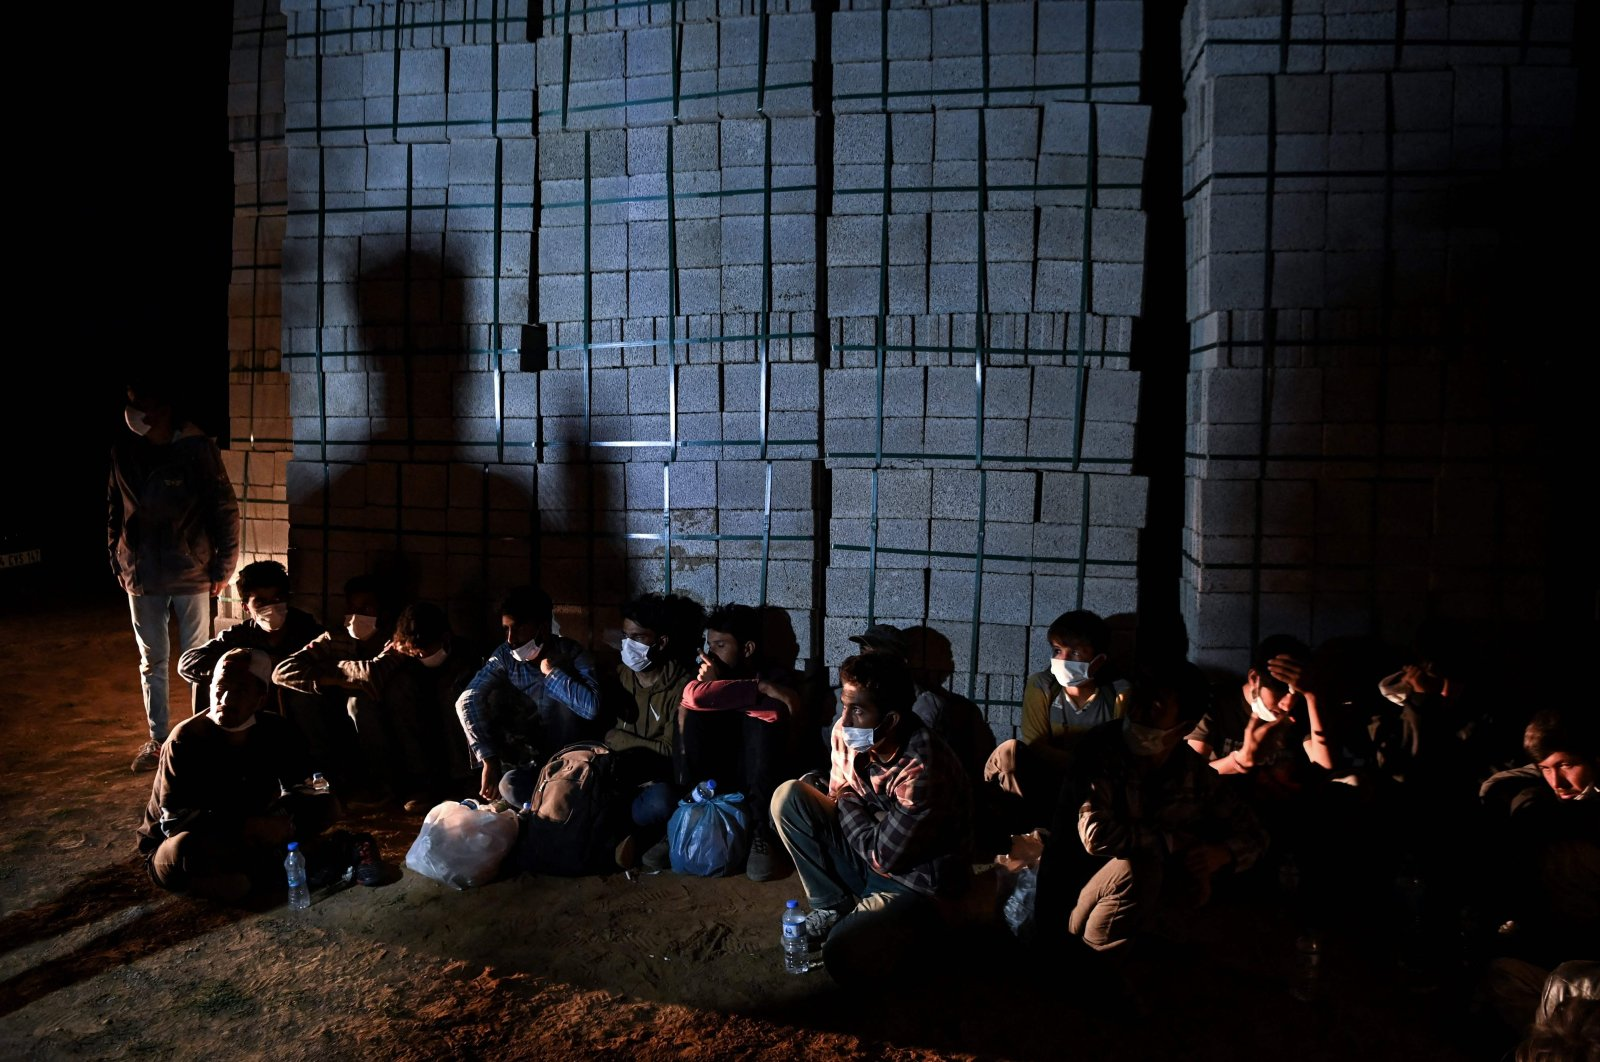 Afghan migrants rest while they wait for transport by smugglers after crossing the Iran-Turkish border on August 15, 2021 in Tatvan, on the western shores of Lake Van, eastern Turkey. (Photo by Ozan KOSE / AFP)